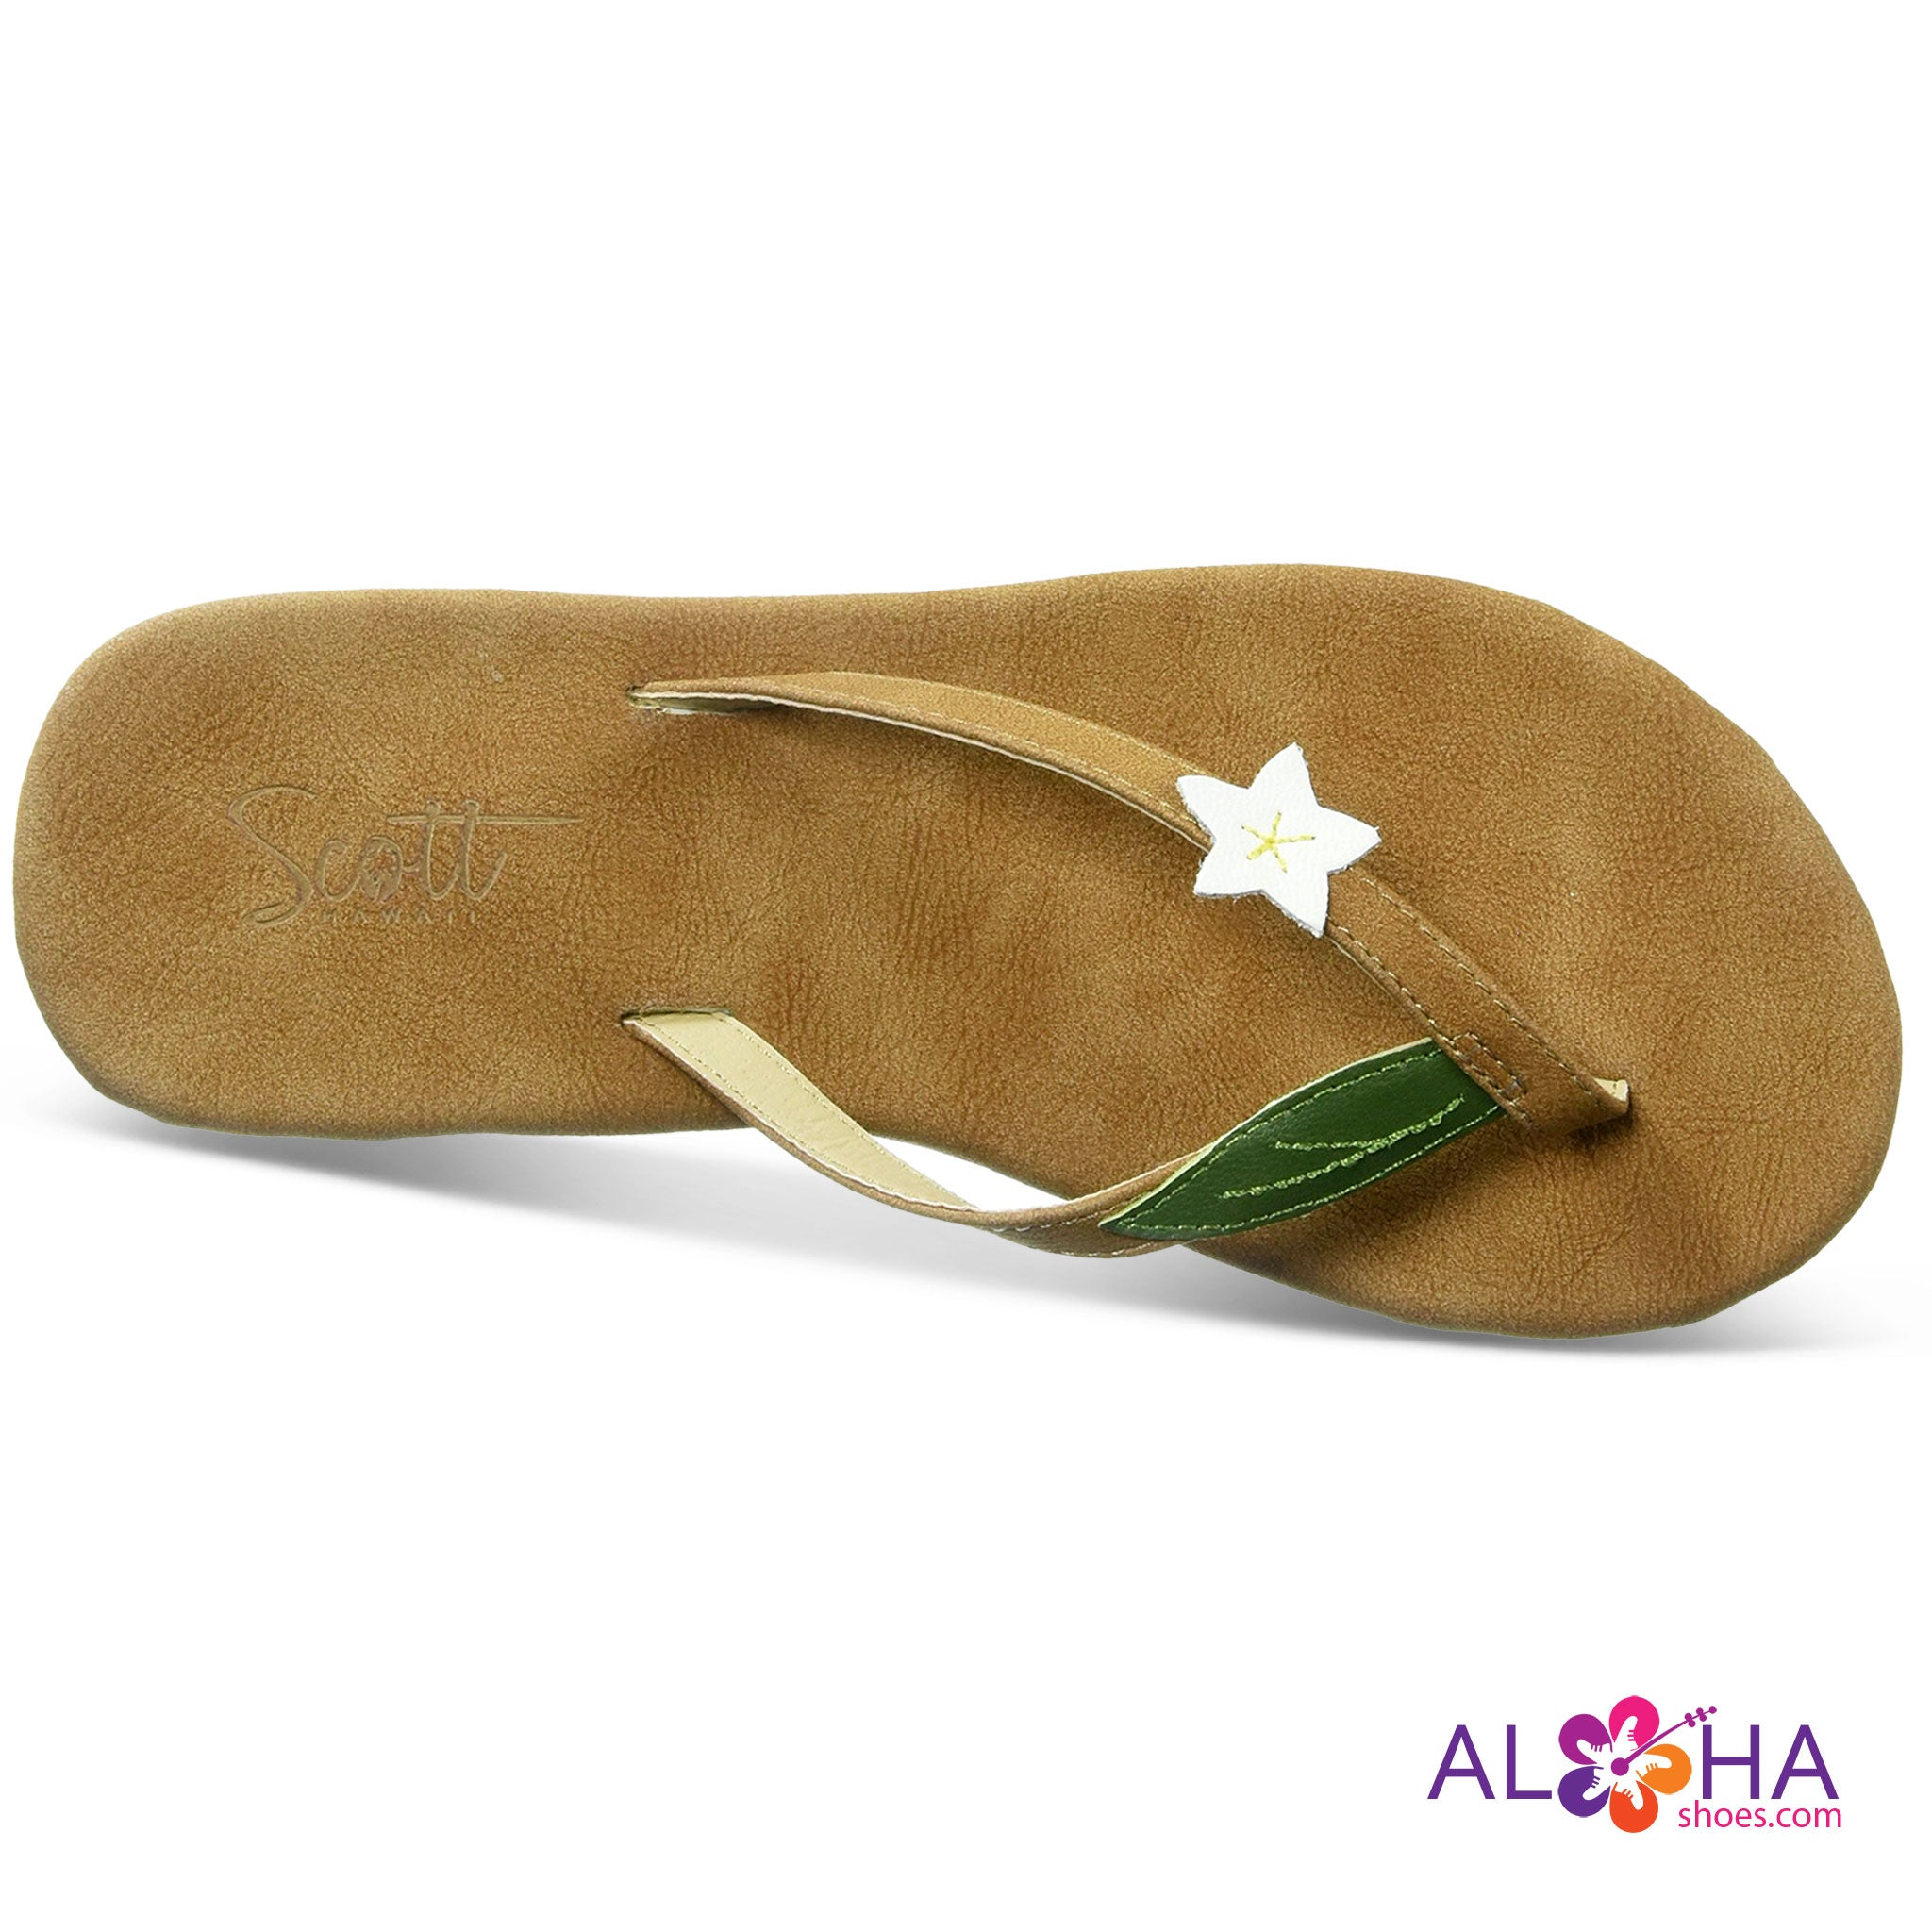 Scott Hawaii Pualani Wedge Vegan Sandals - AlohaShoes.com